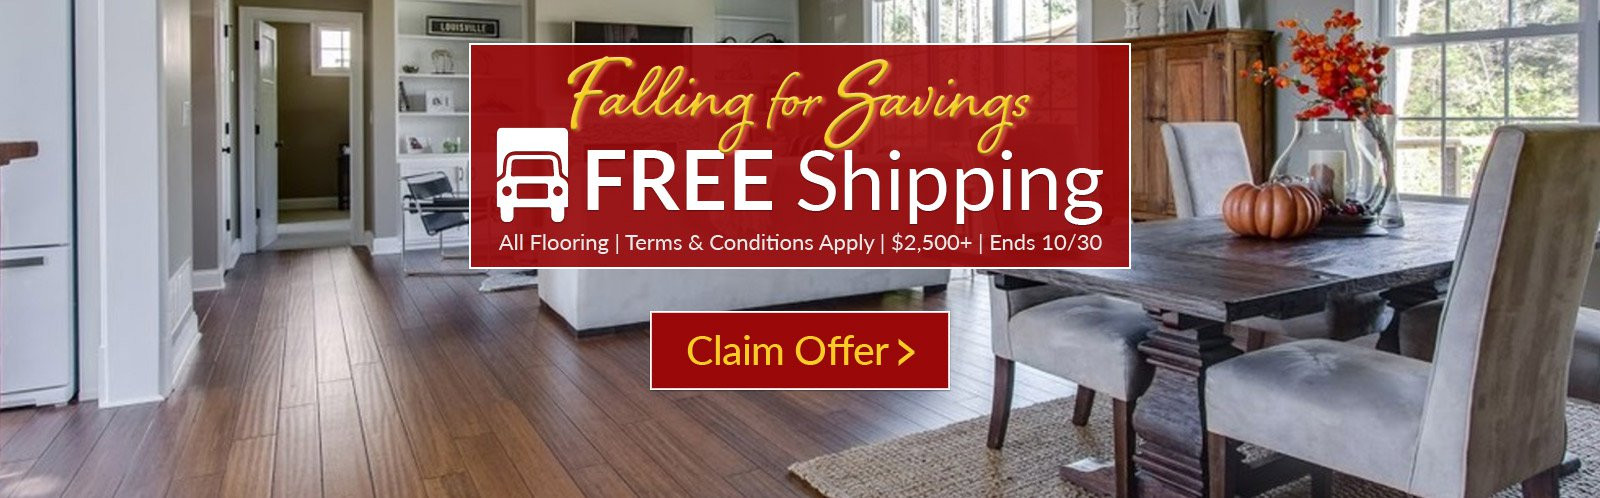 hardwood floor repair oakland ca of green building construction materials and home decor cali bamboo inside your shopping cart is empty